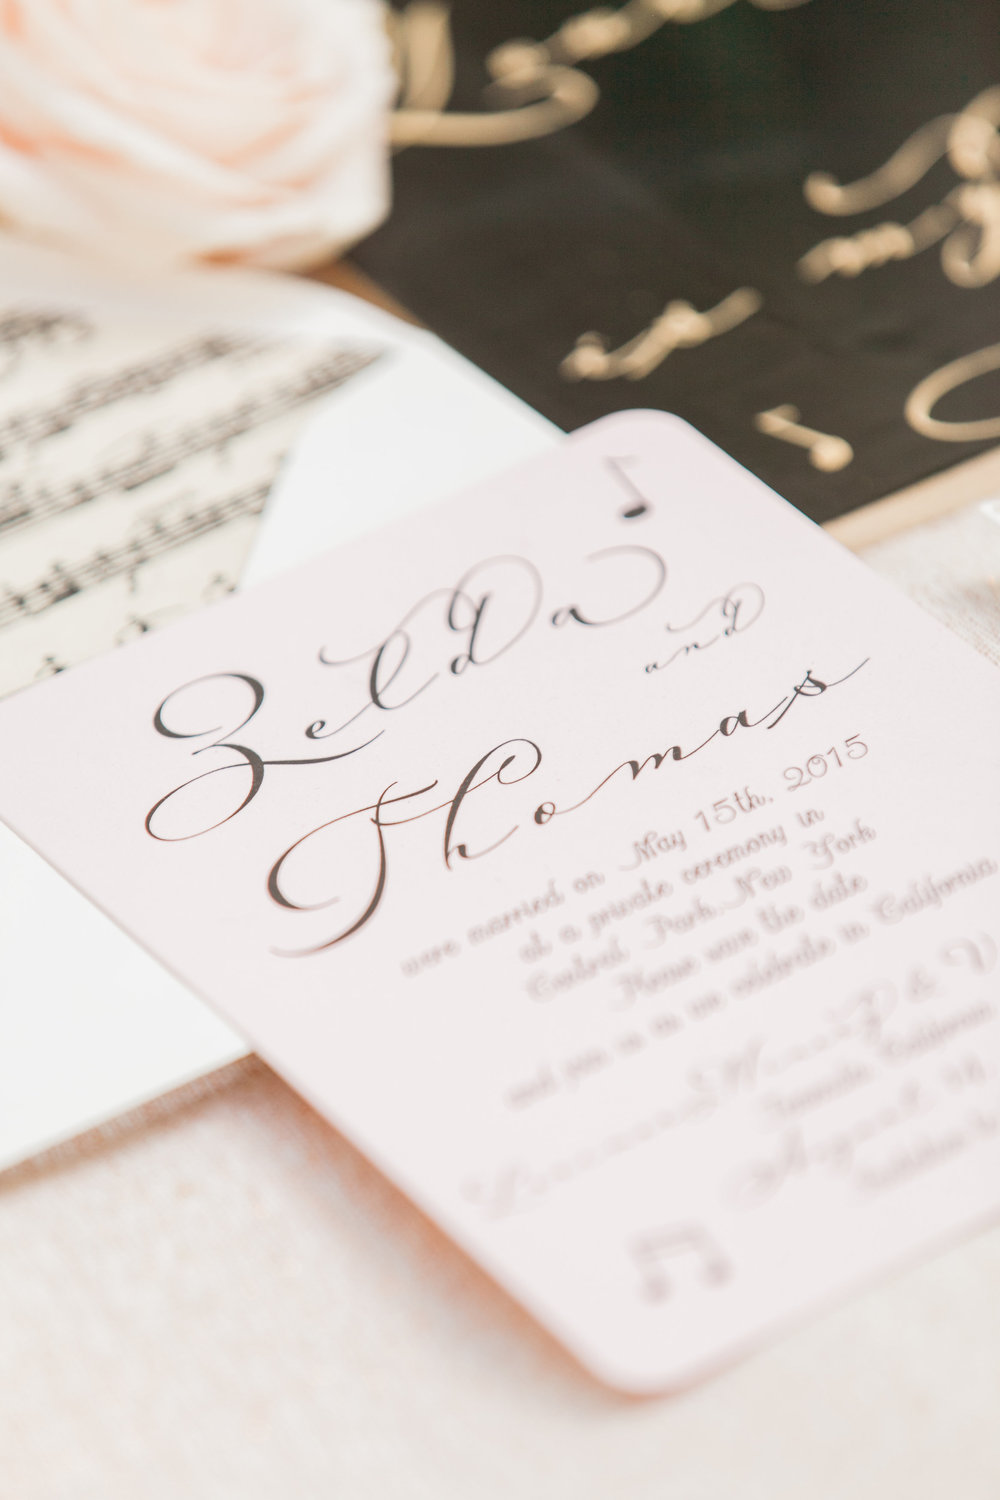 temeculaweddinginvitations.com | Paper Villa Stationery and Design | TBM Photography | Ballet Wedding Inspiration